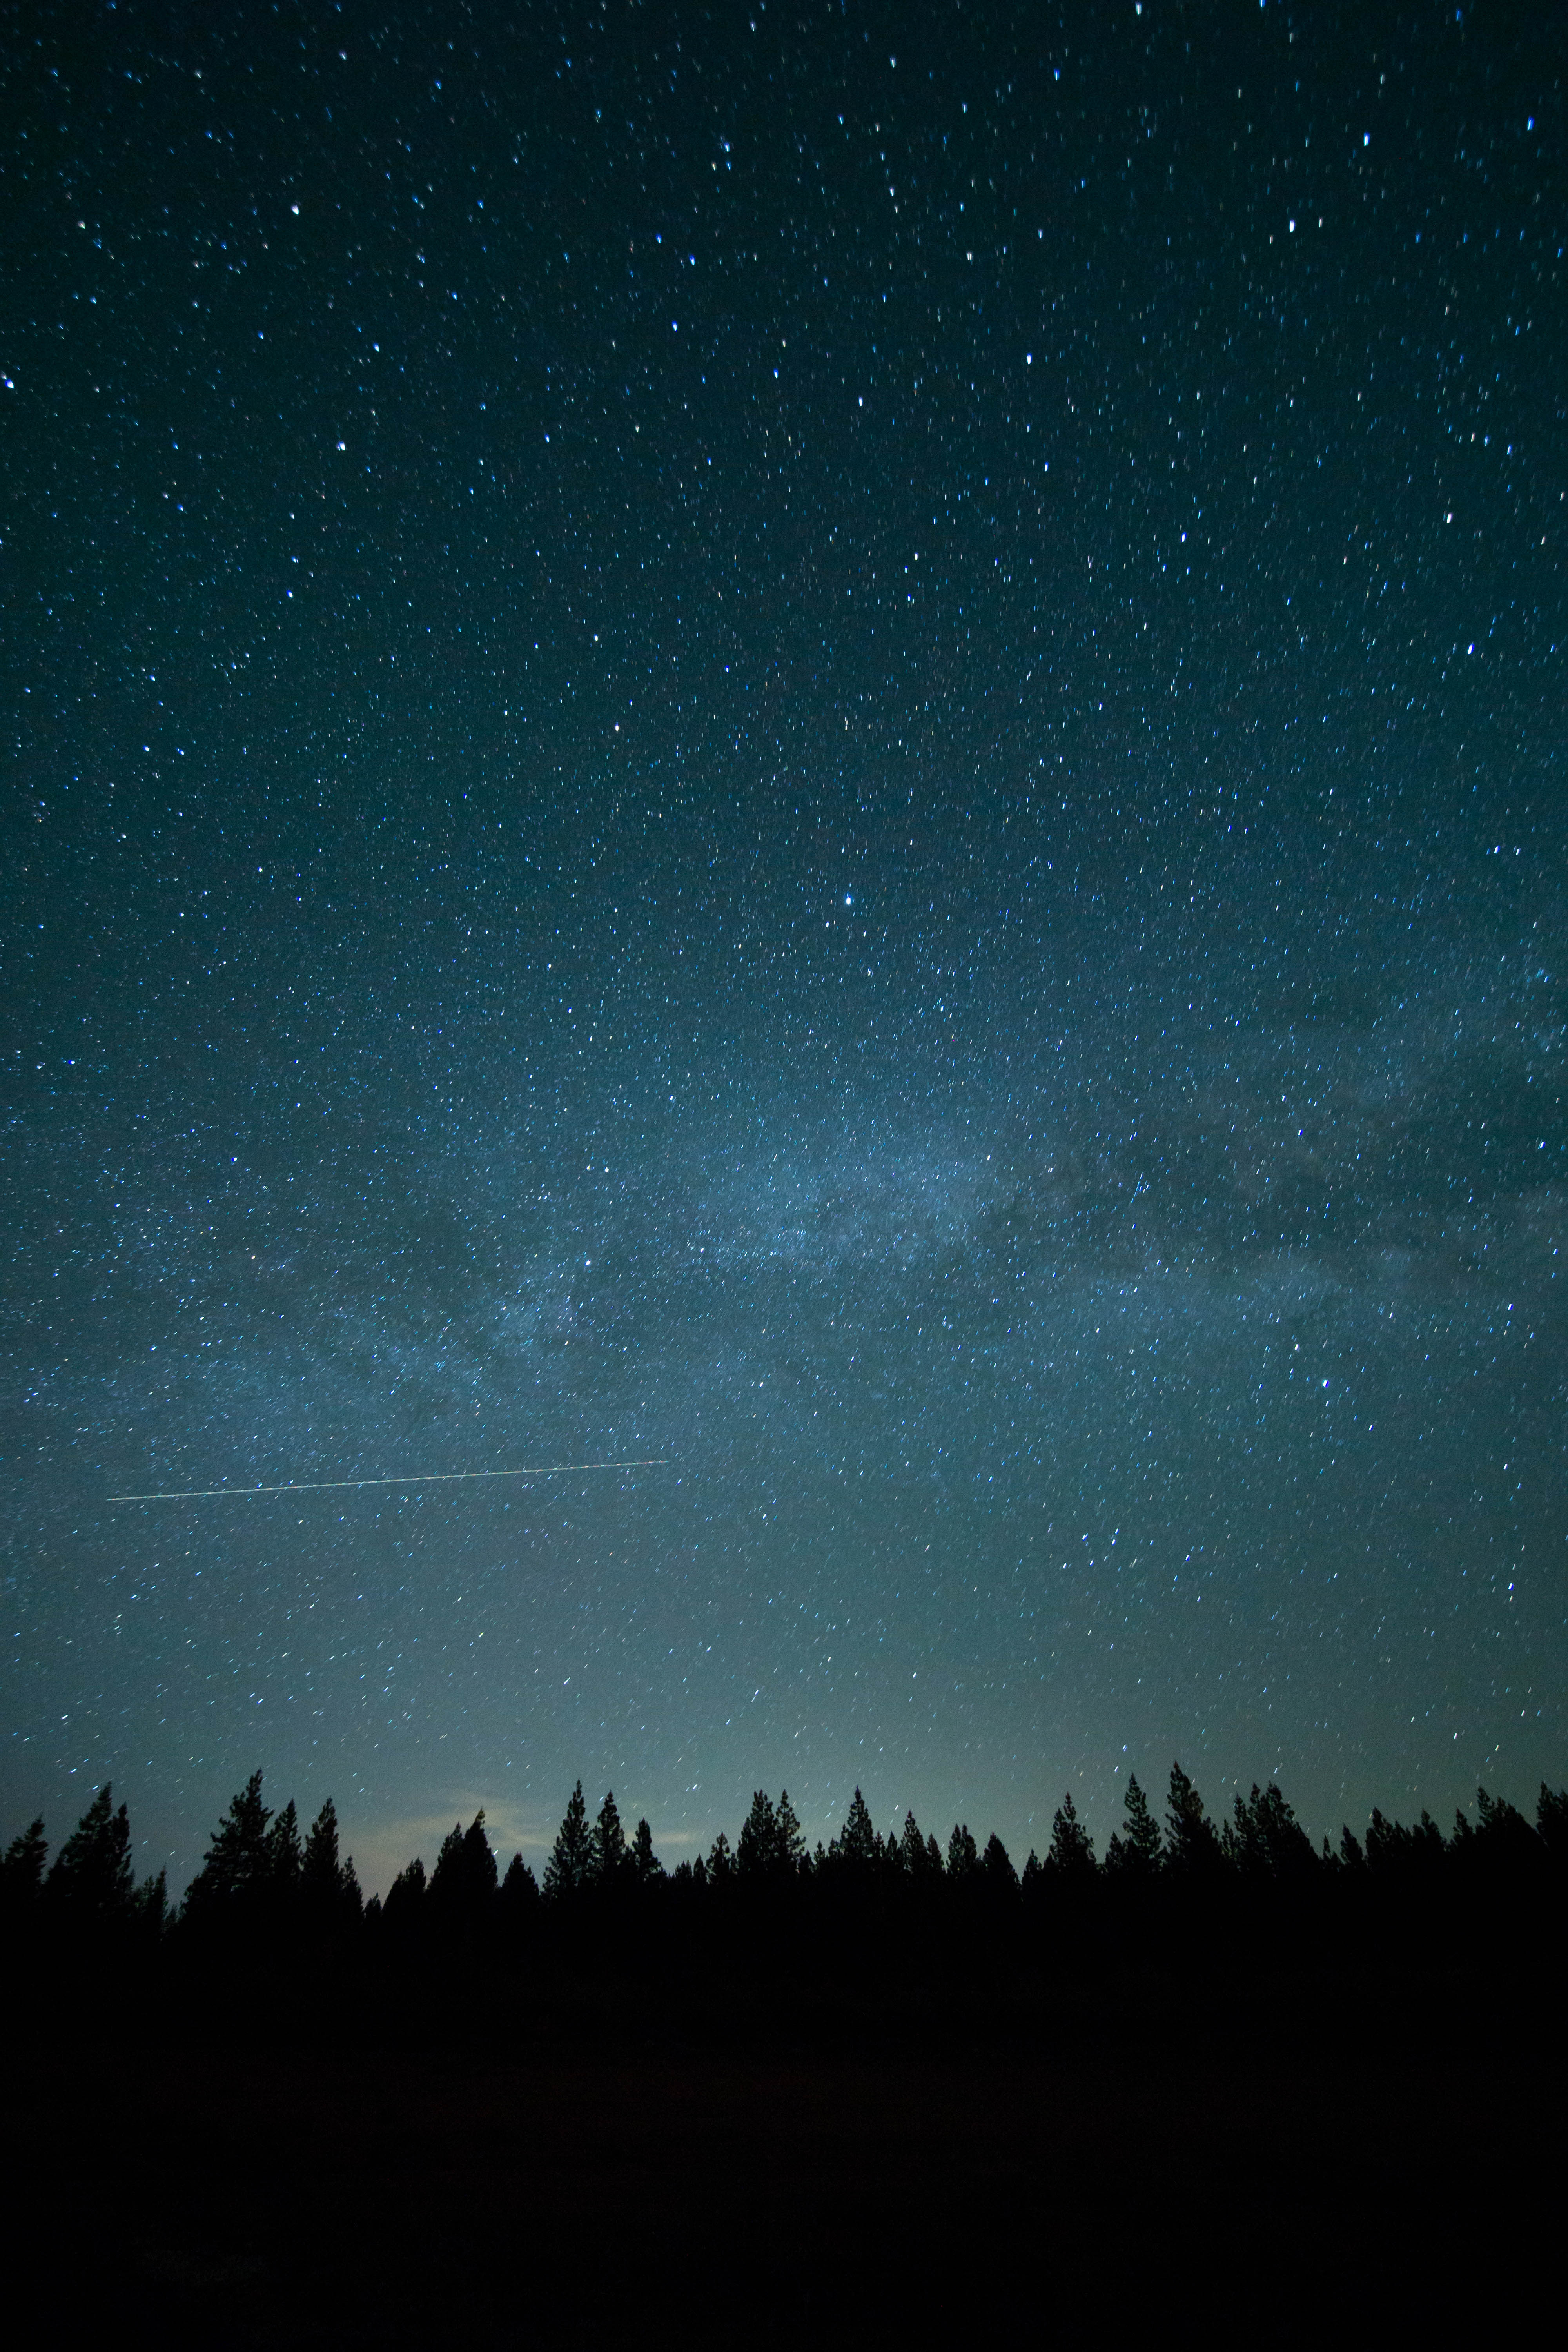 Star Background Pictures